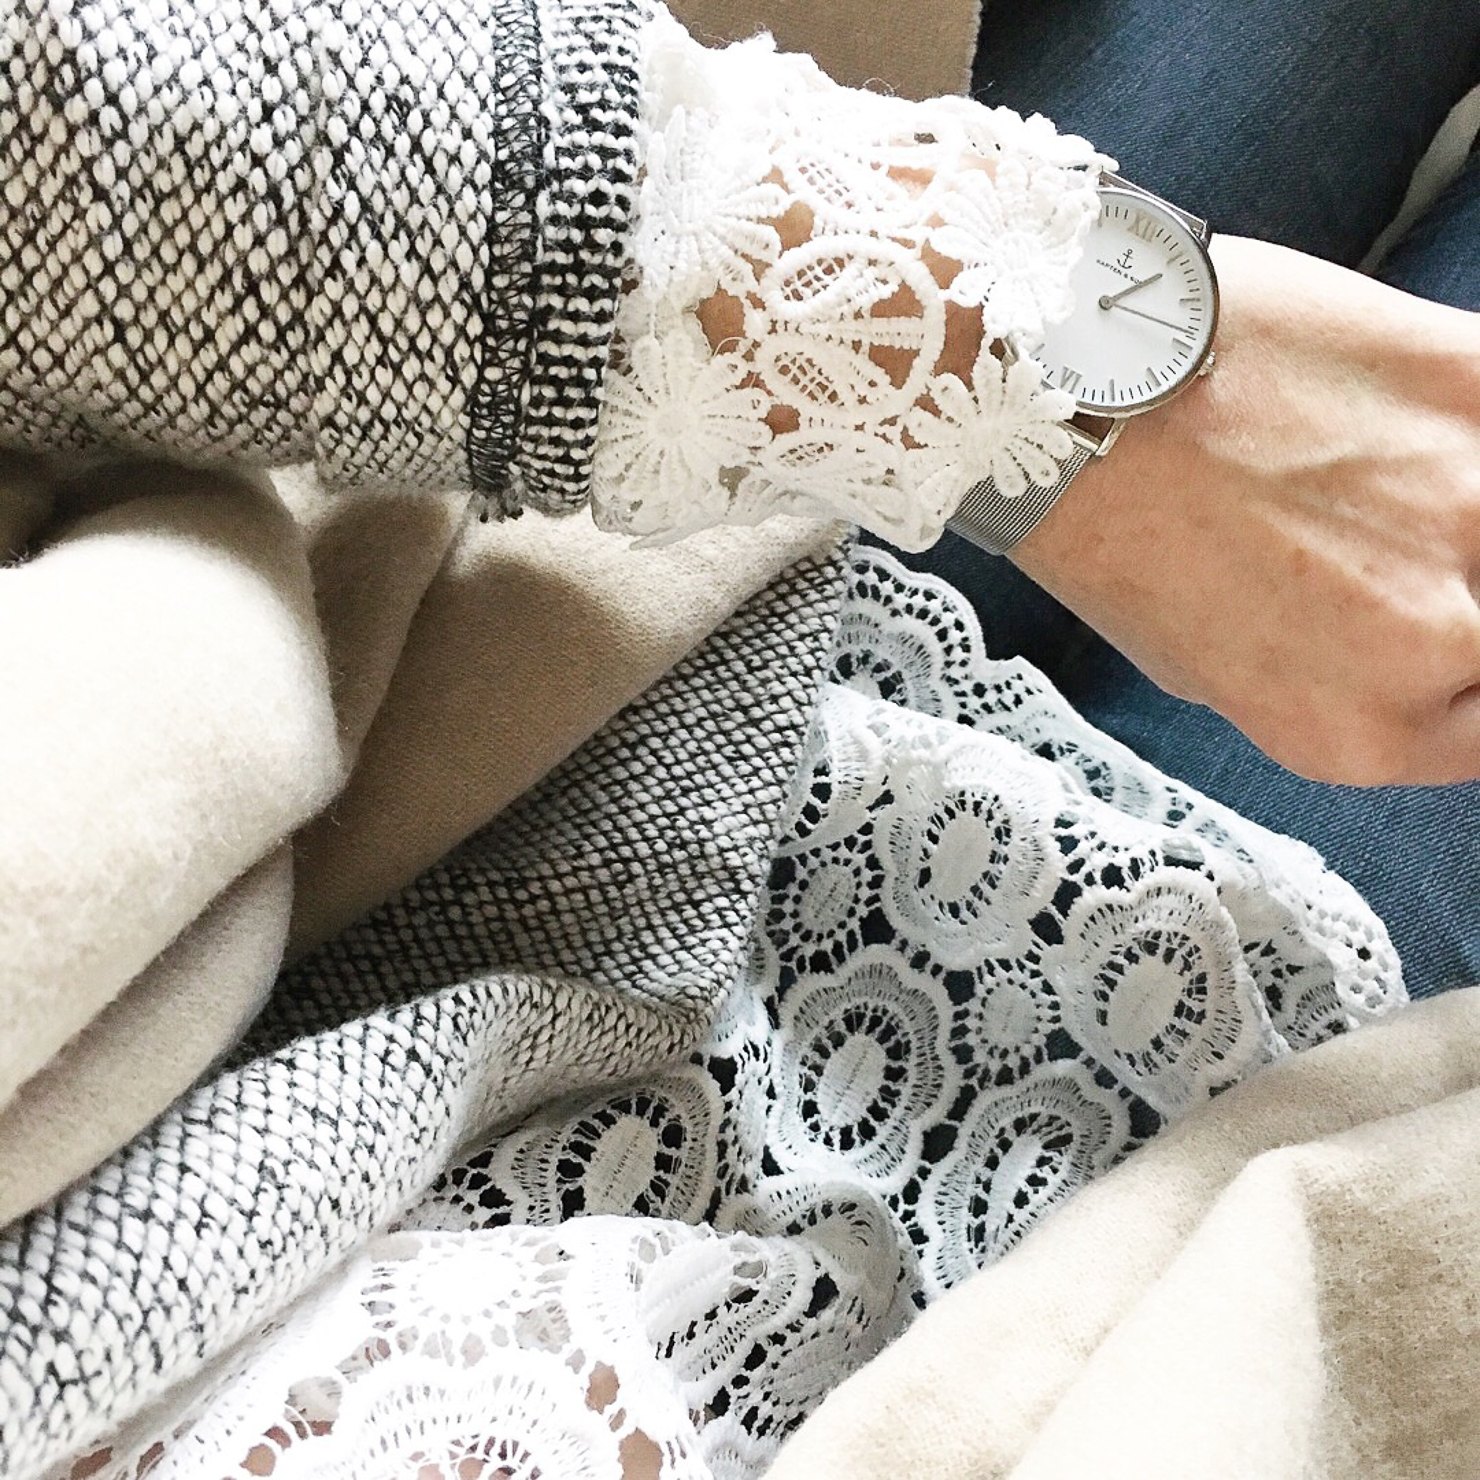 Instagram warm and cozy with lace details